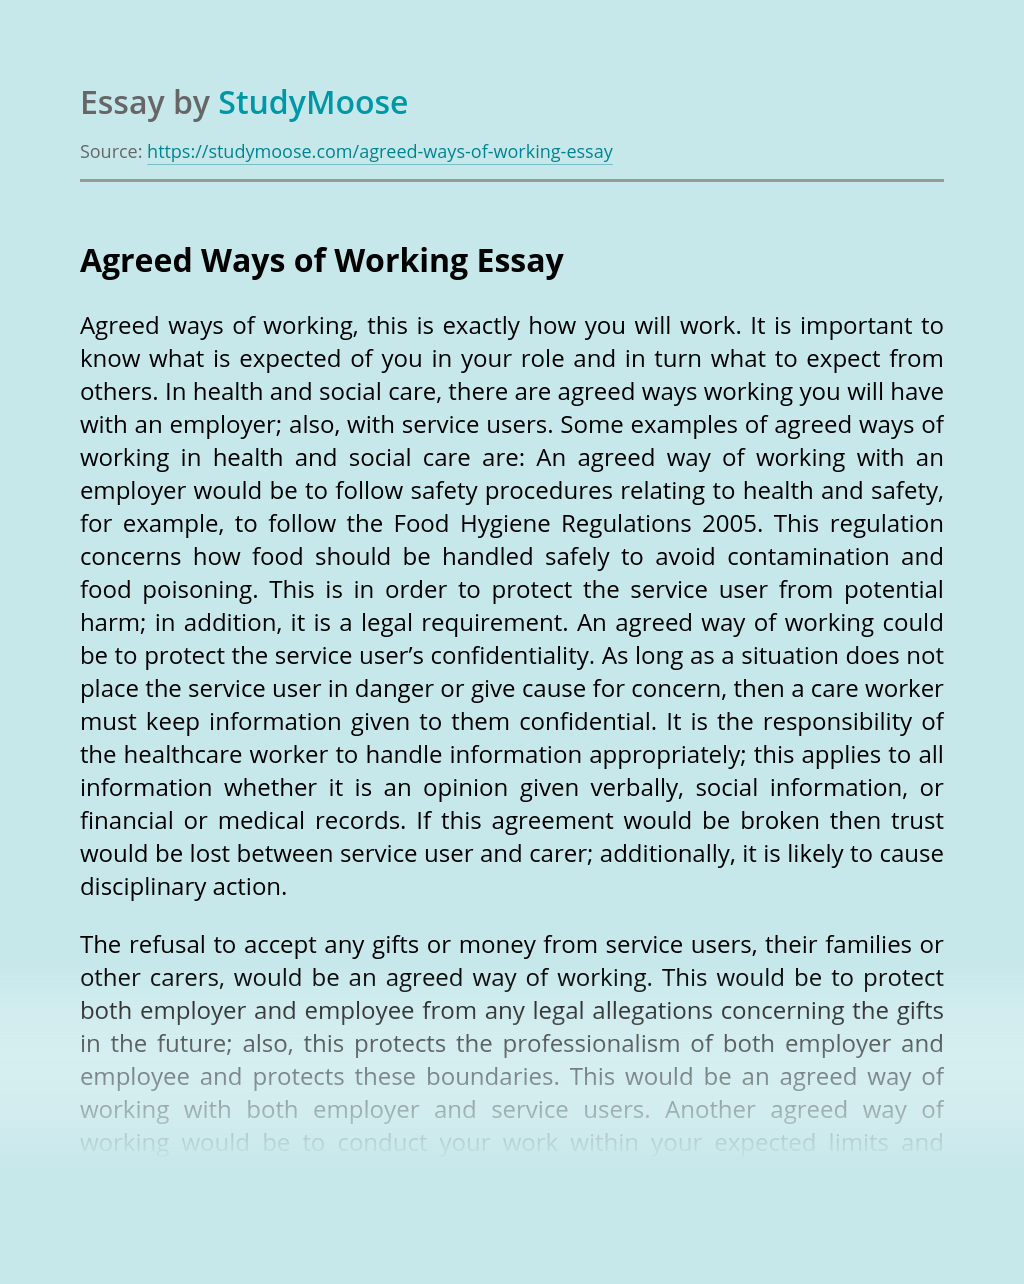 Agreed Ways of Working